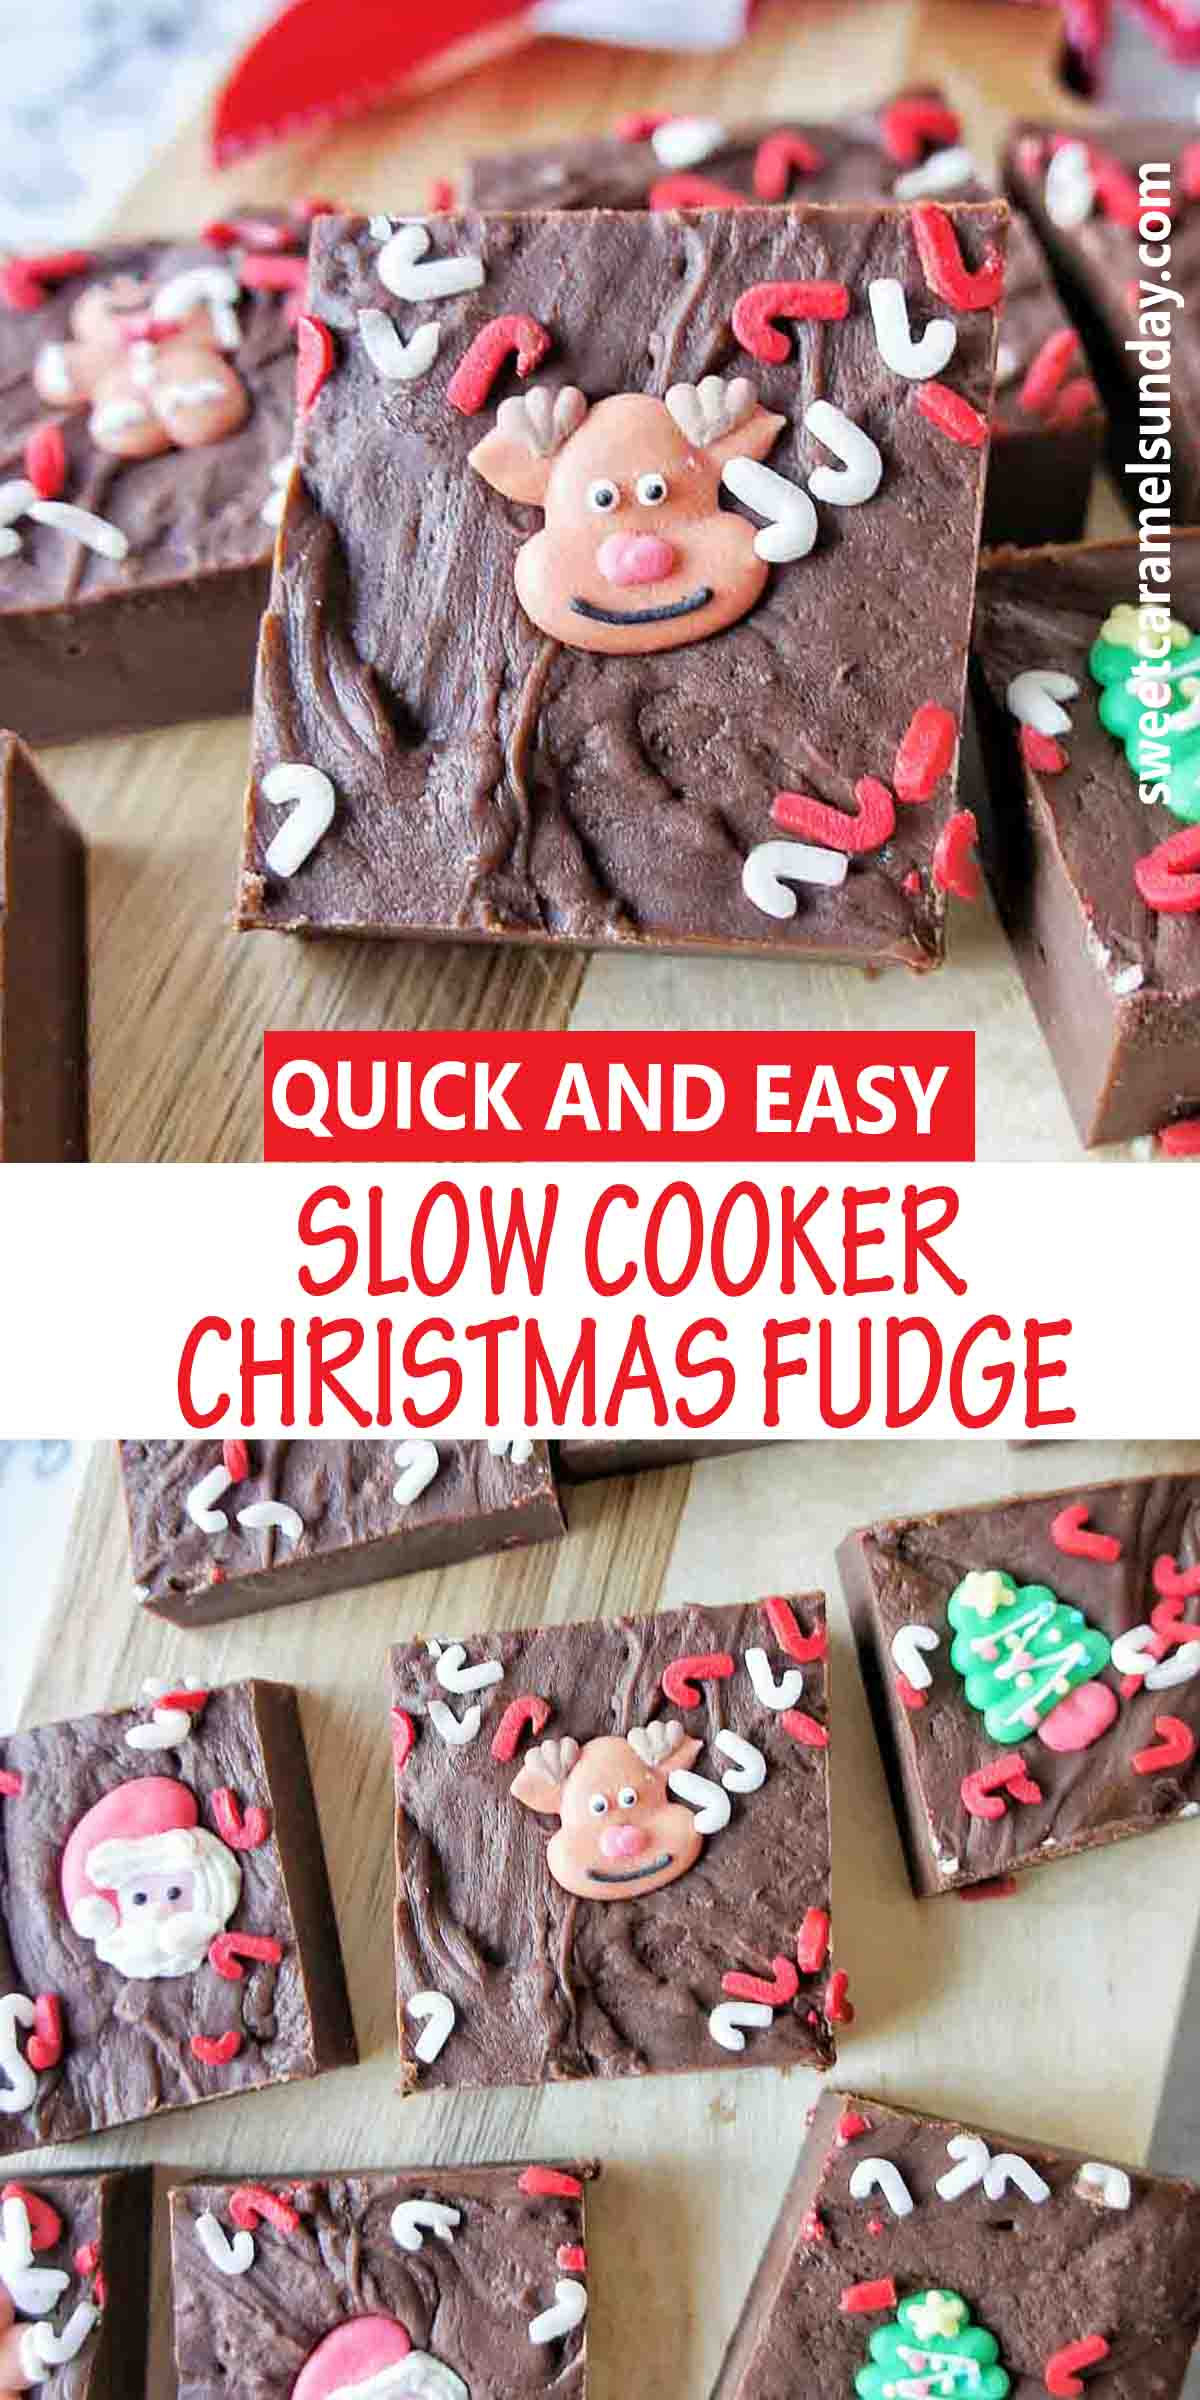 Slow Cooker Christmas Fudge with text label